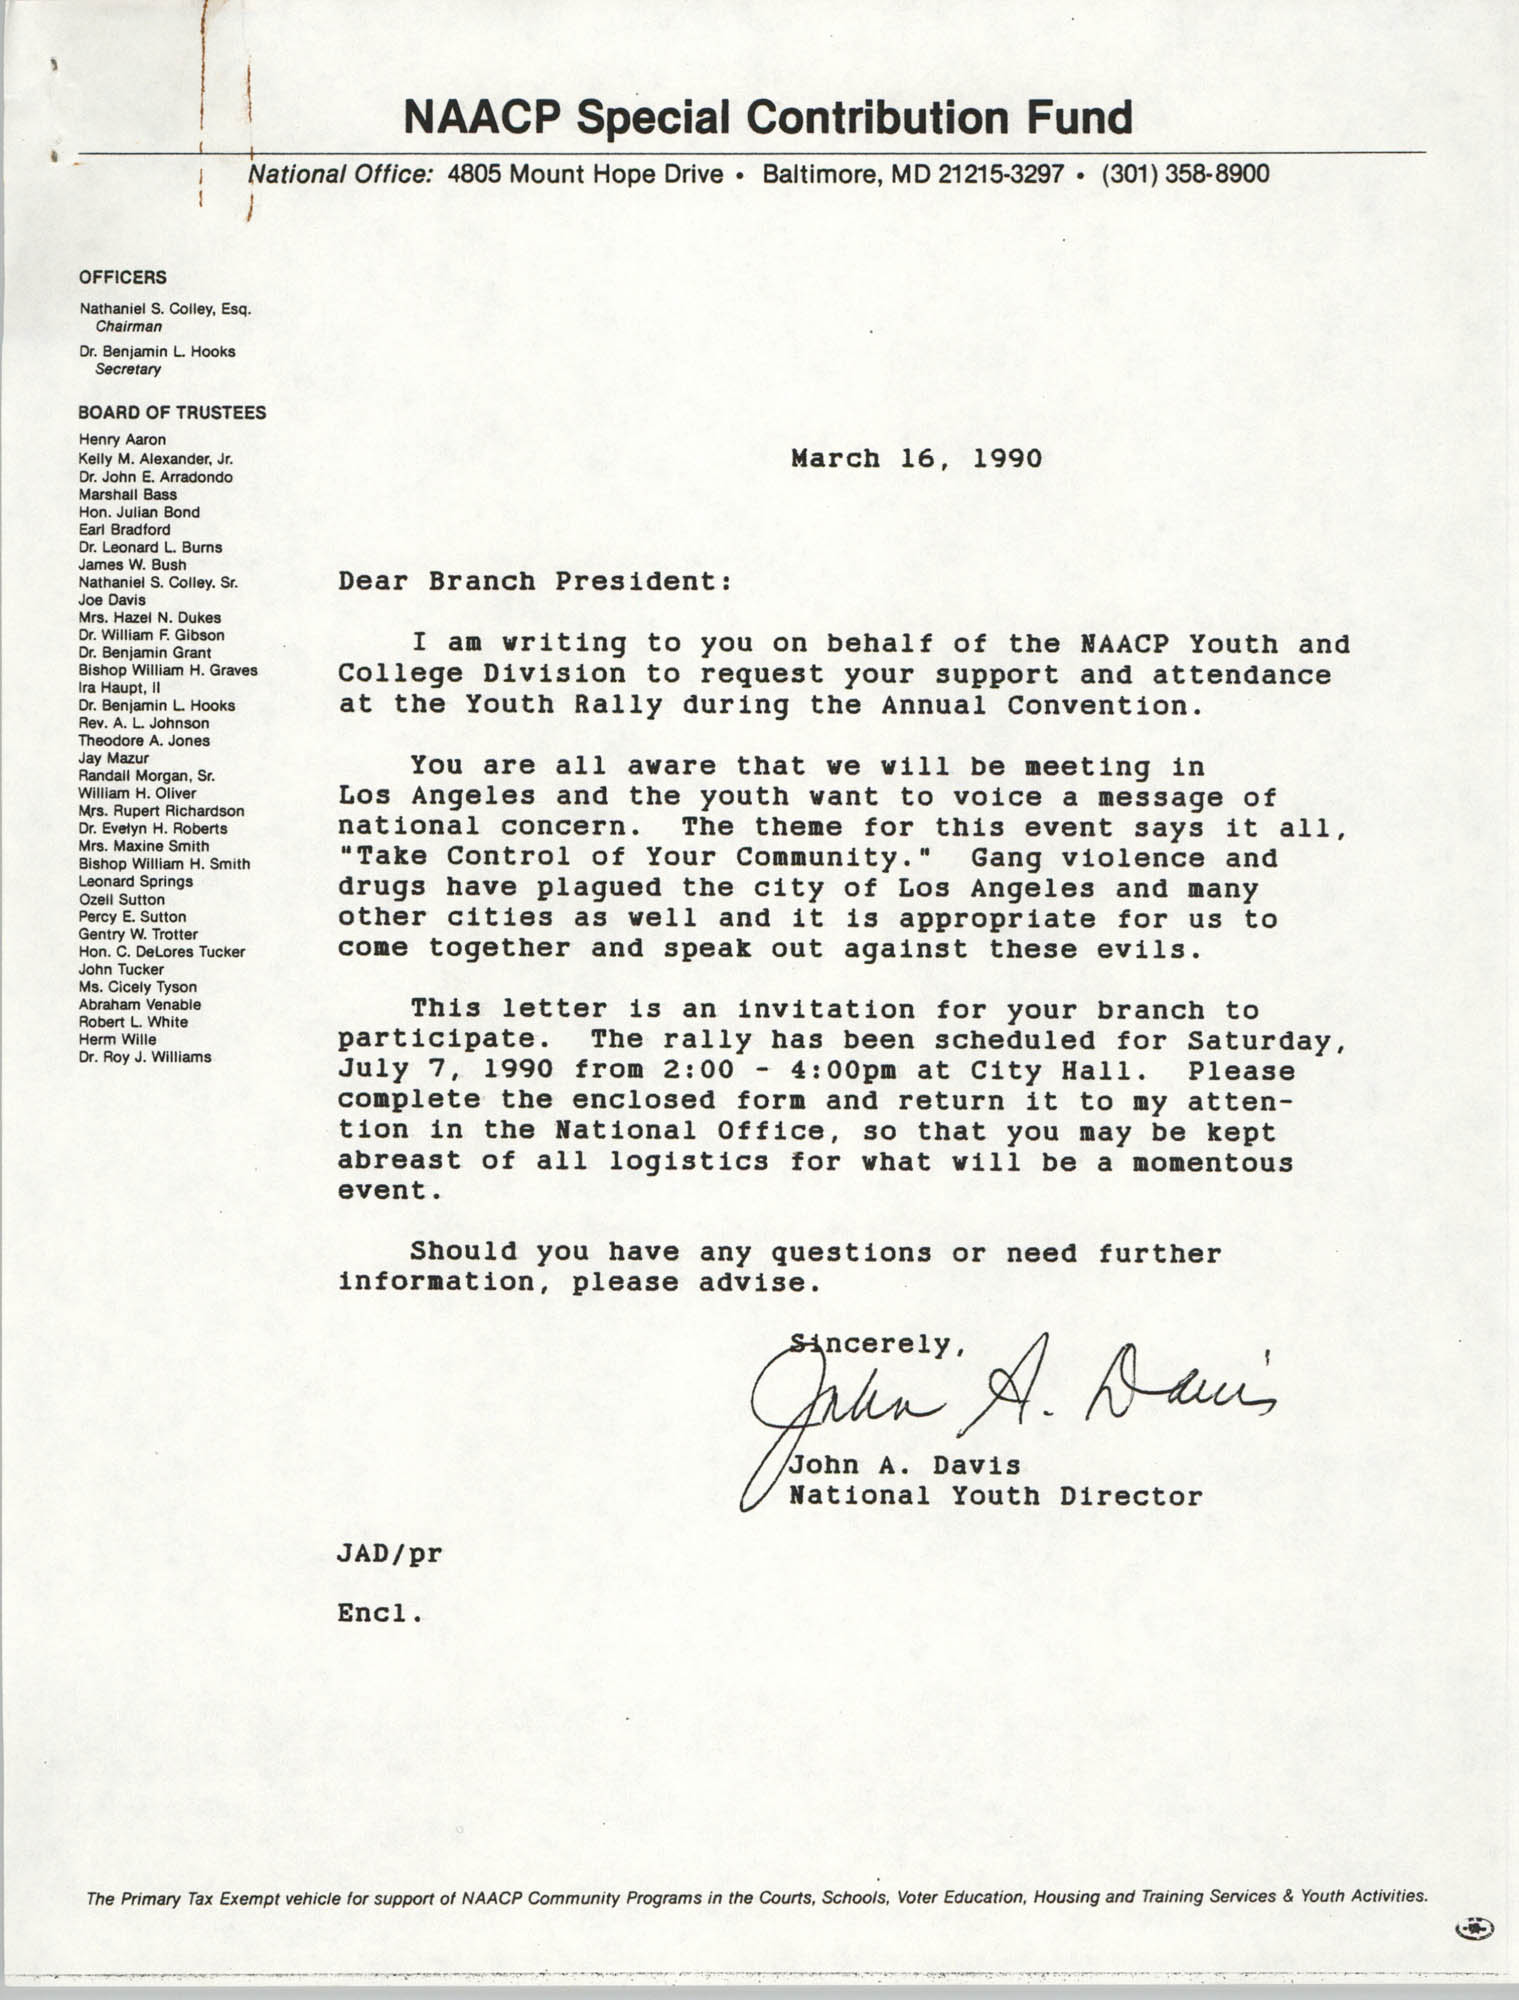 NAACP Special Contribution Fund, March 16, 1990